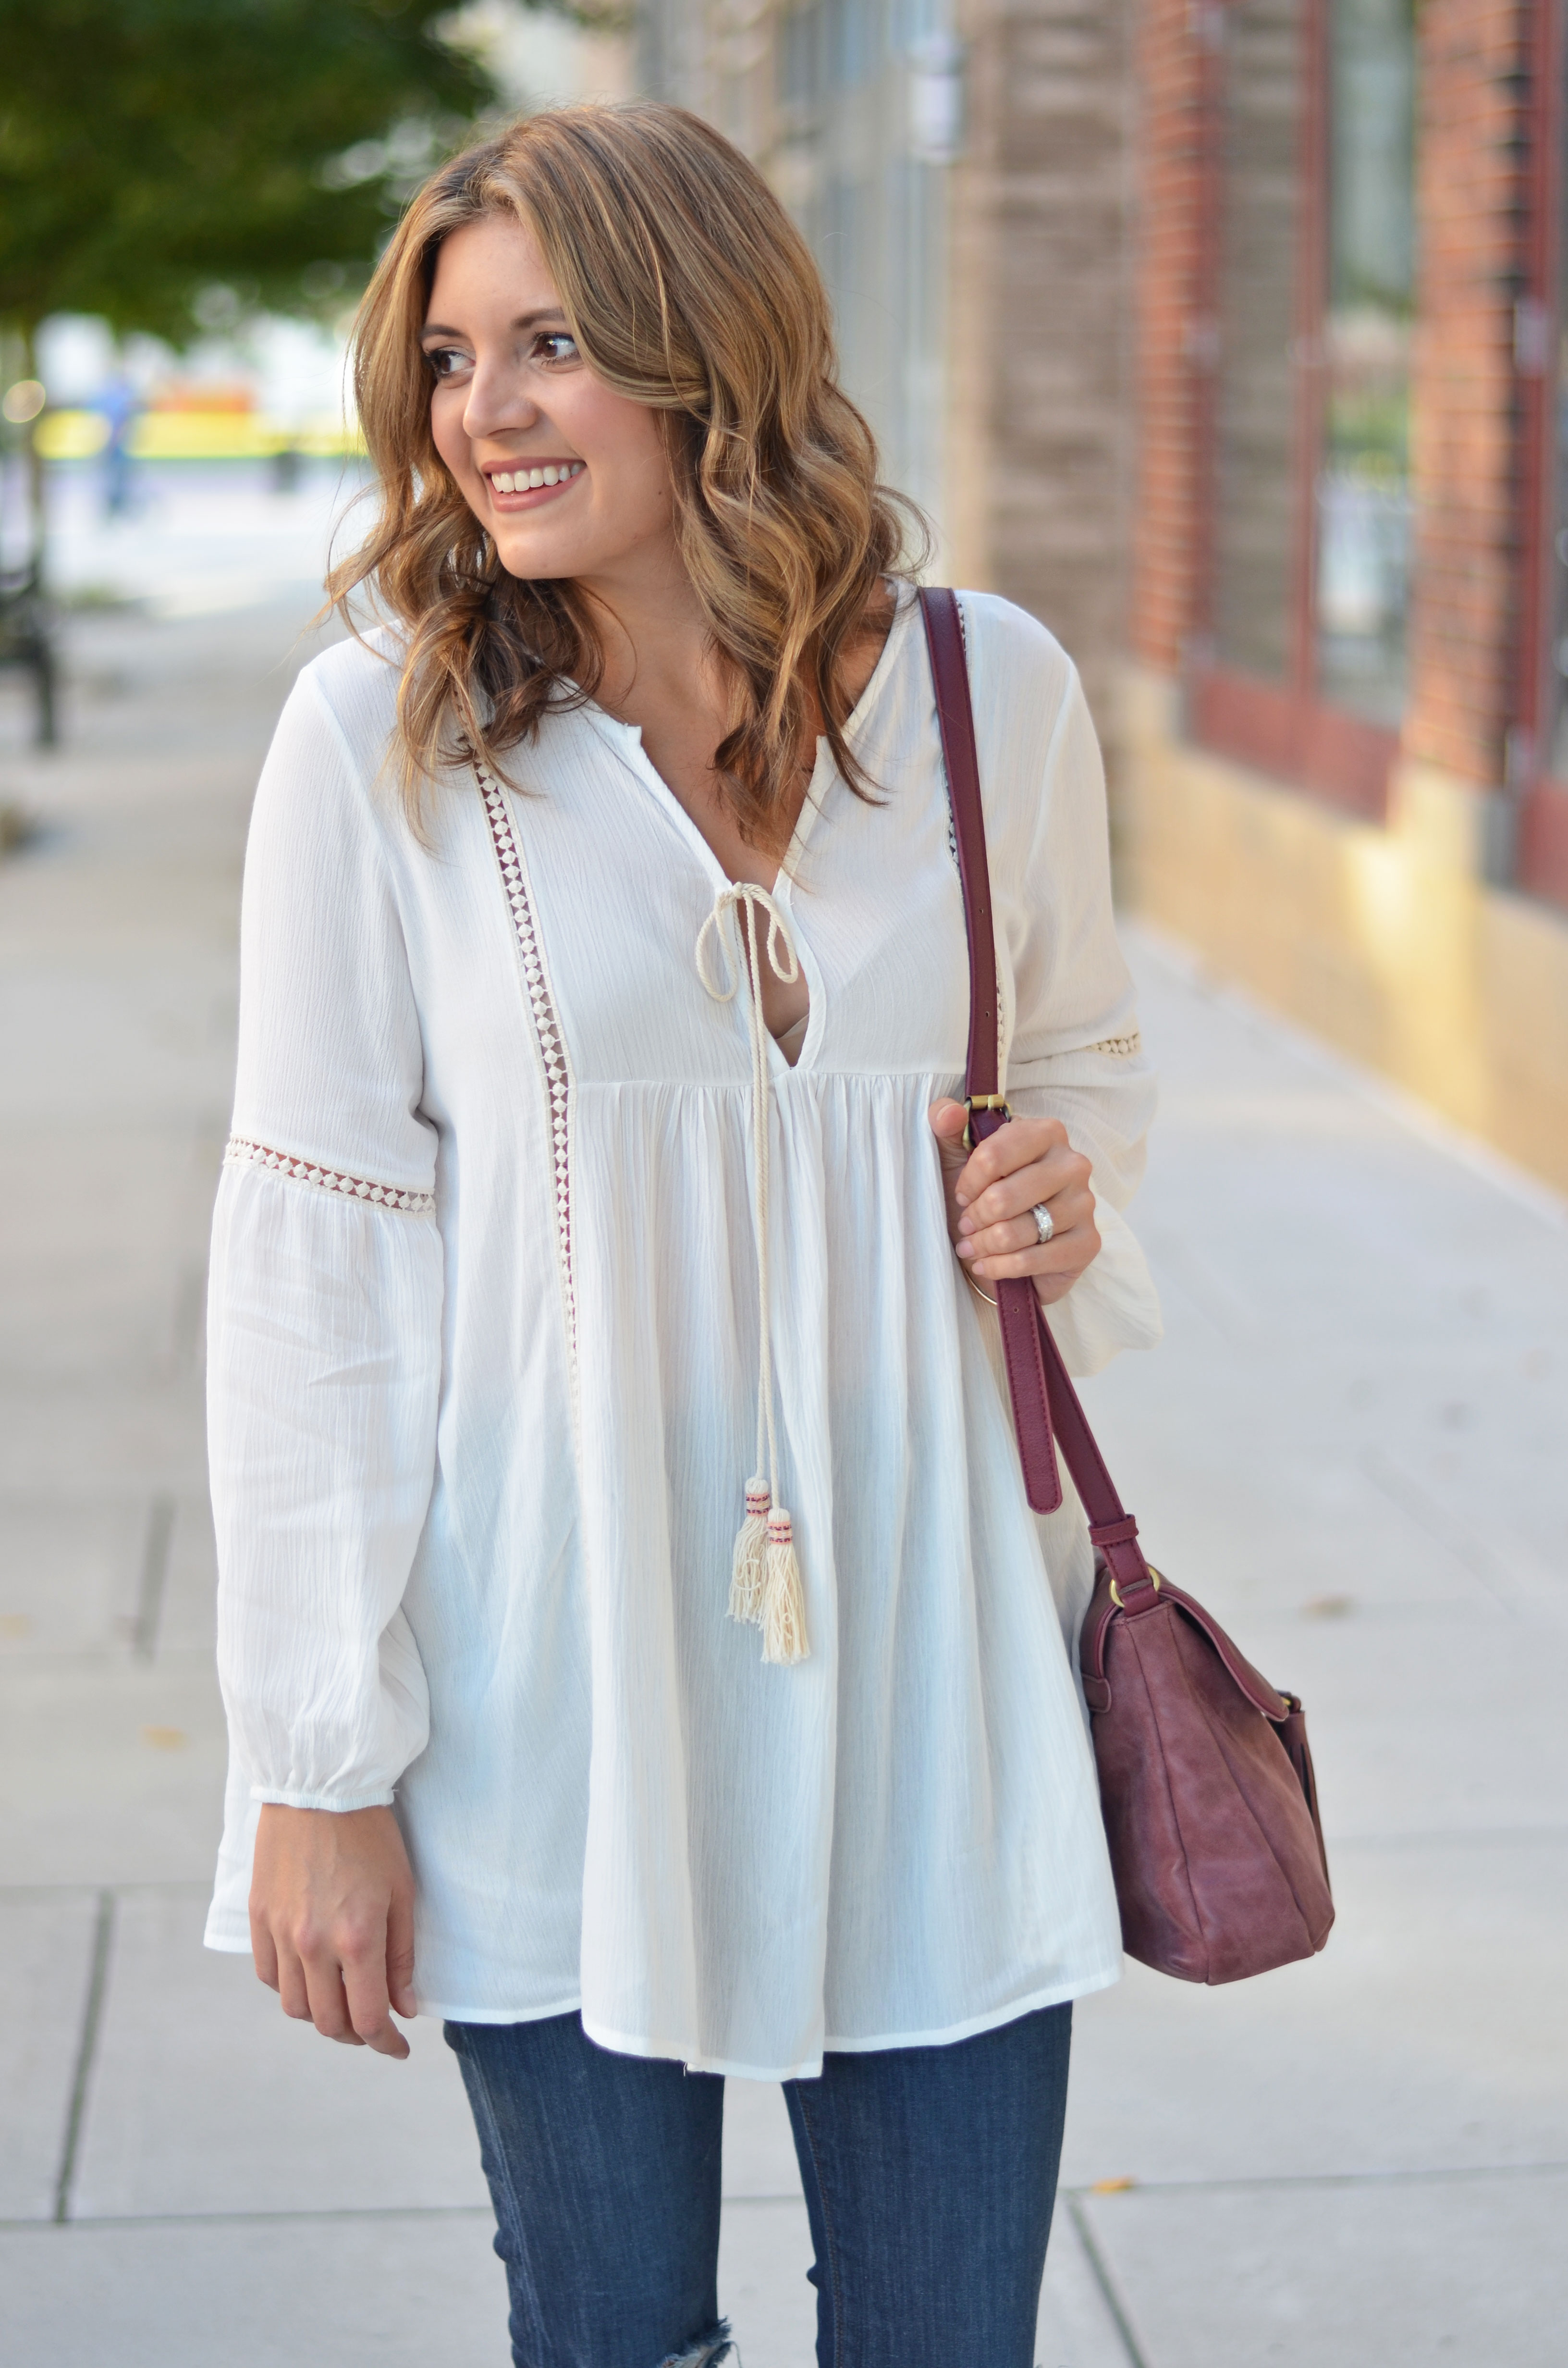 peasant top outfit - white peasant top with jeans | www.bylaurenm.com